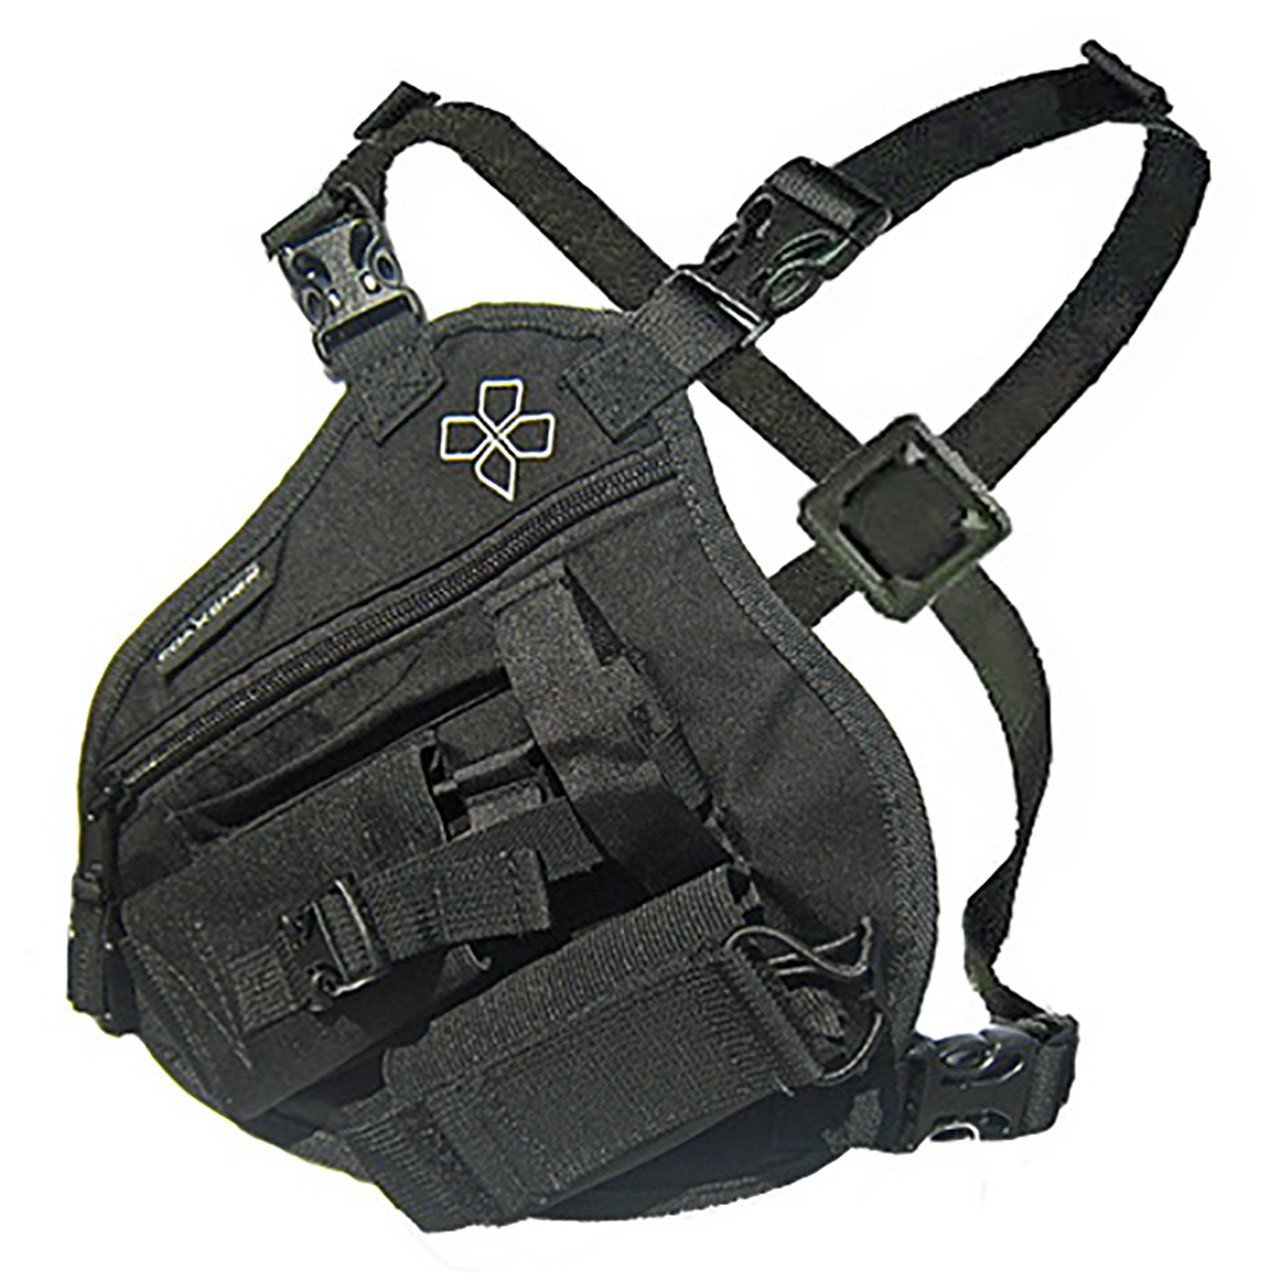 Coaxsher RP-1 Scout Radio Chest Harness by COAXSHER